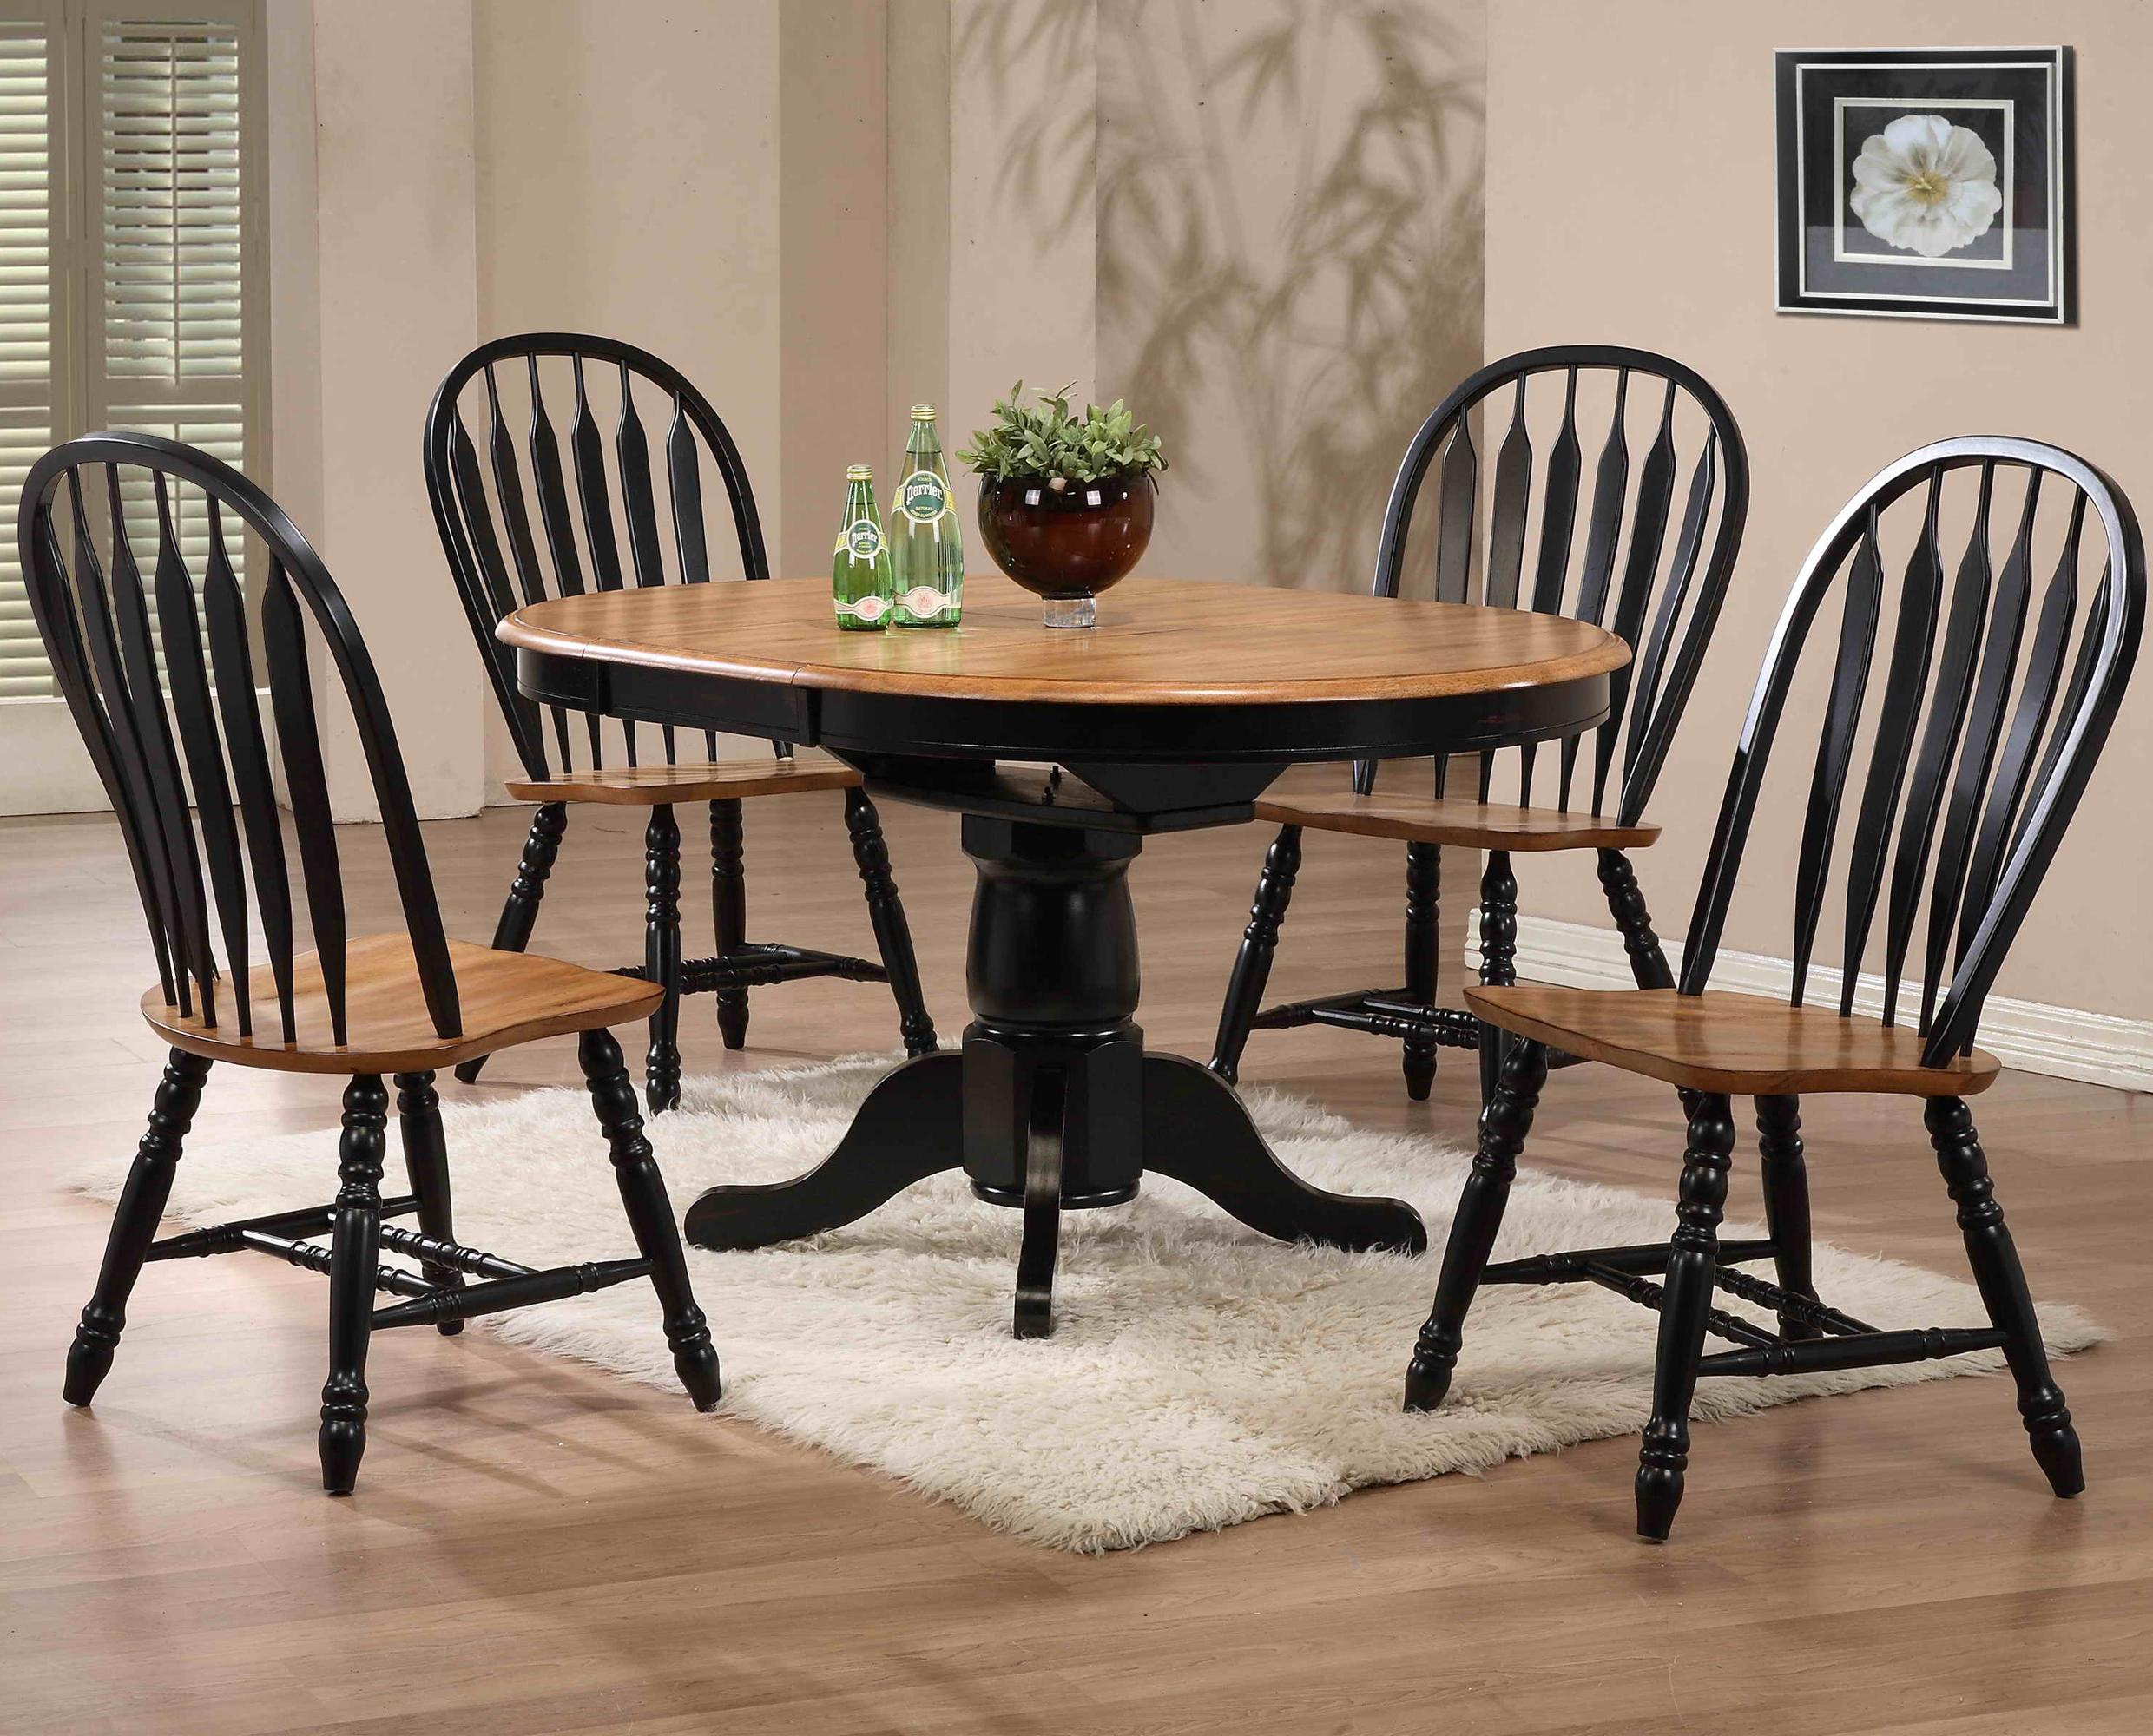 E.C.I. Furniture Dining  5 Piece Set - Item Number: 2150-10-T/P/4x2190-10-S